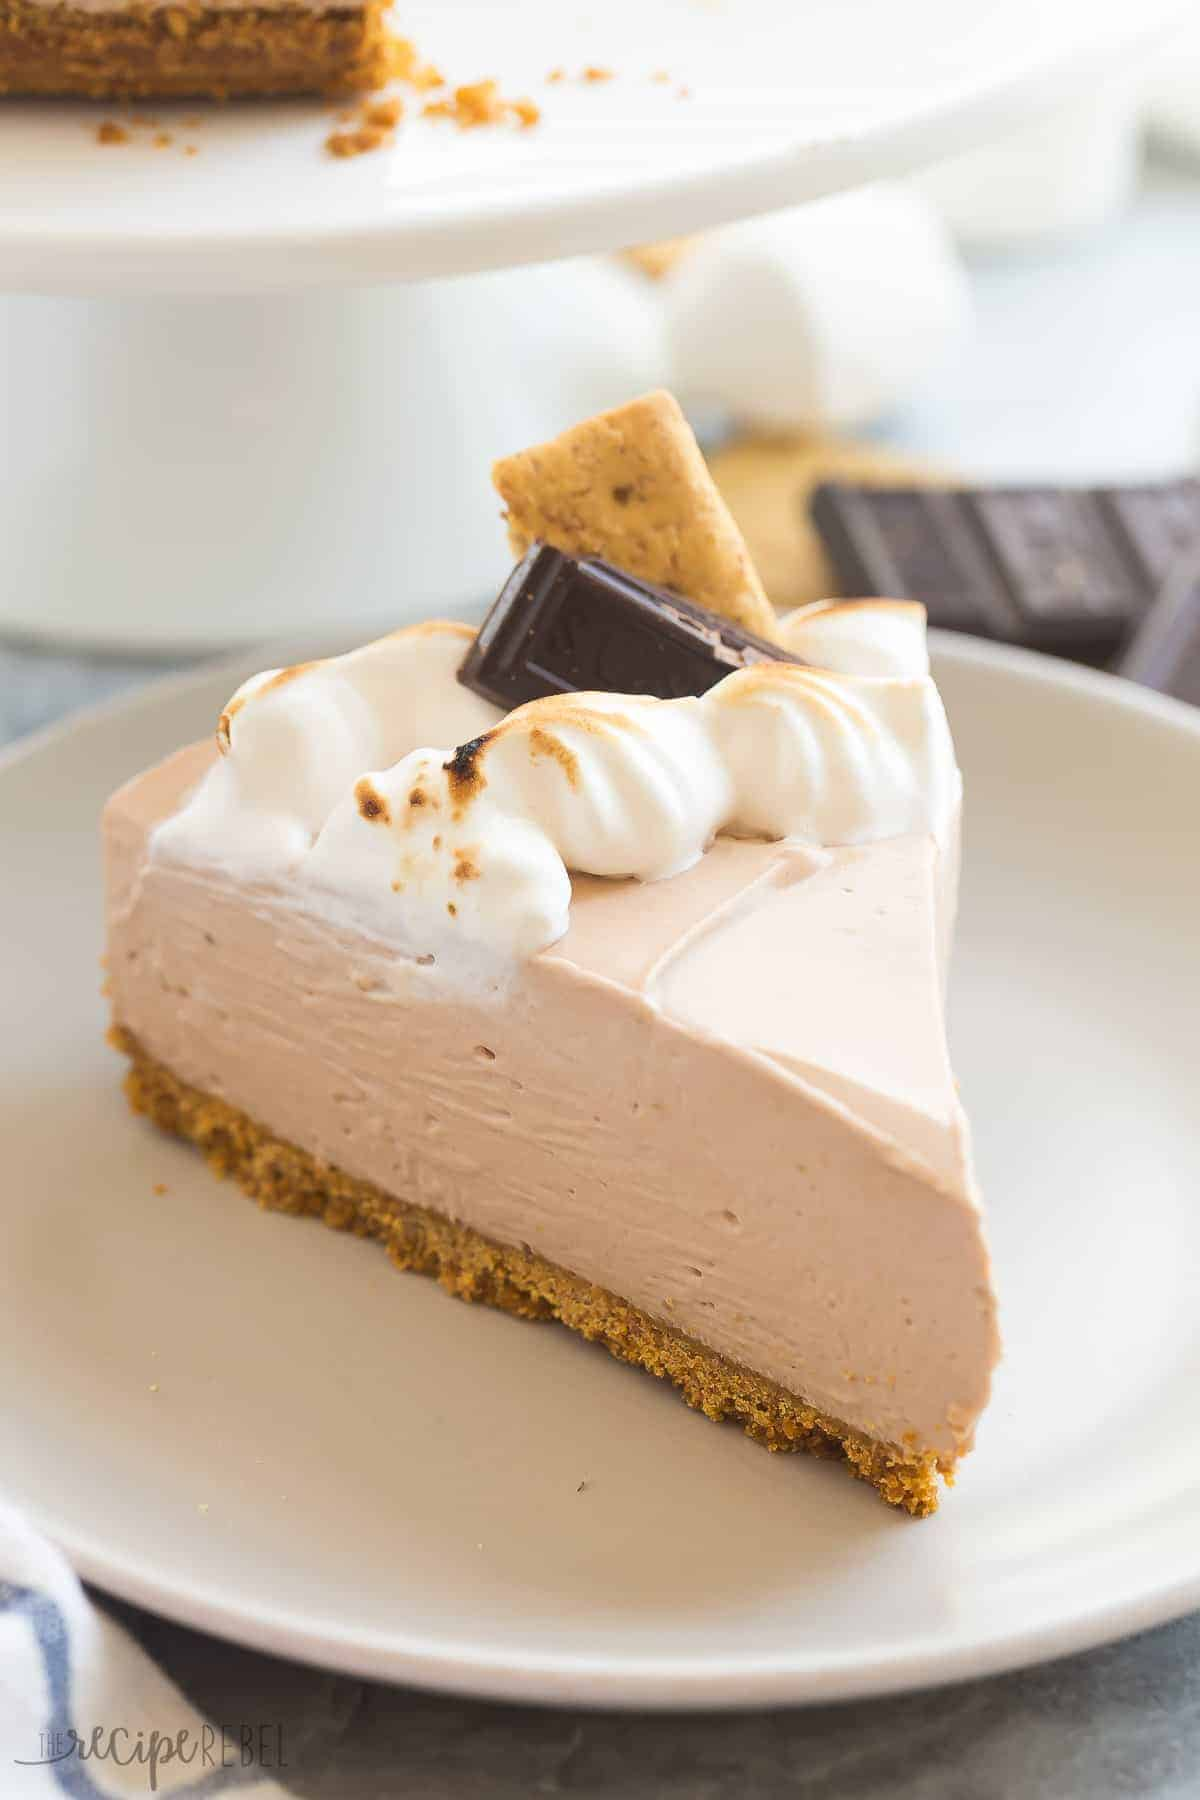 This No Bake S'mores Cheesecake is one of THE BEST cheesecakes I've ever made! A smooth chocolate marshmallow cheesecake on a graham cracker crust, topped with toasted homemade marshmallow cream! https://www.thereciperebel.com/no-bake-smores-cheesecake/